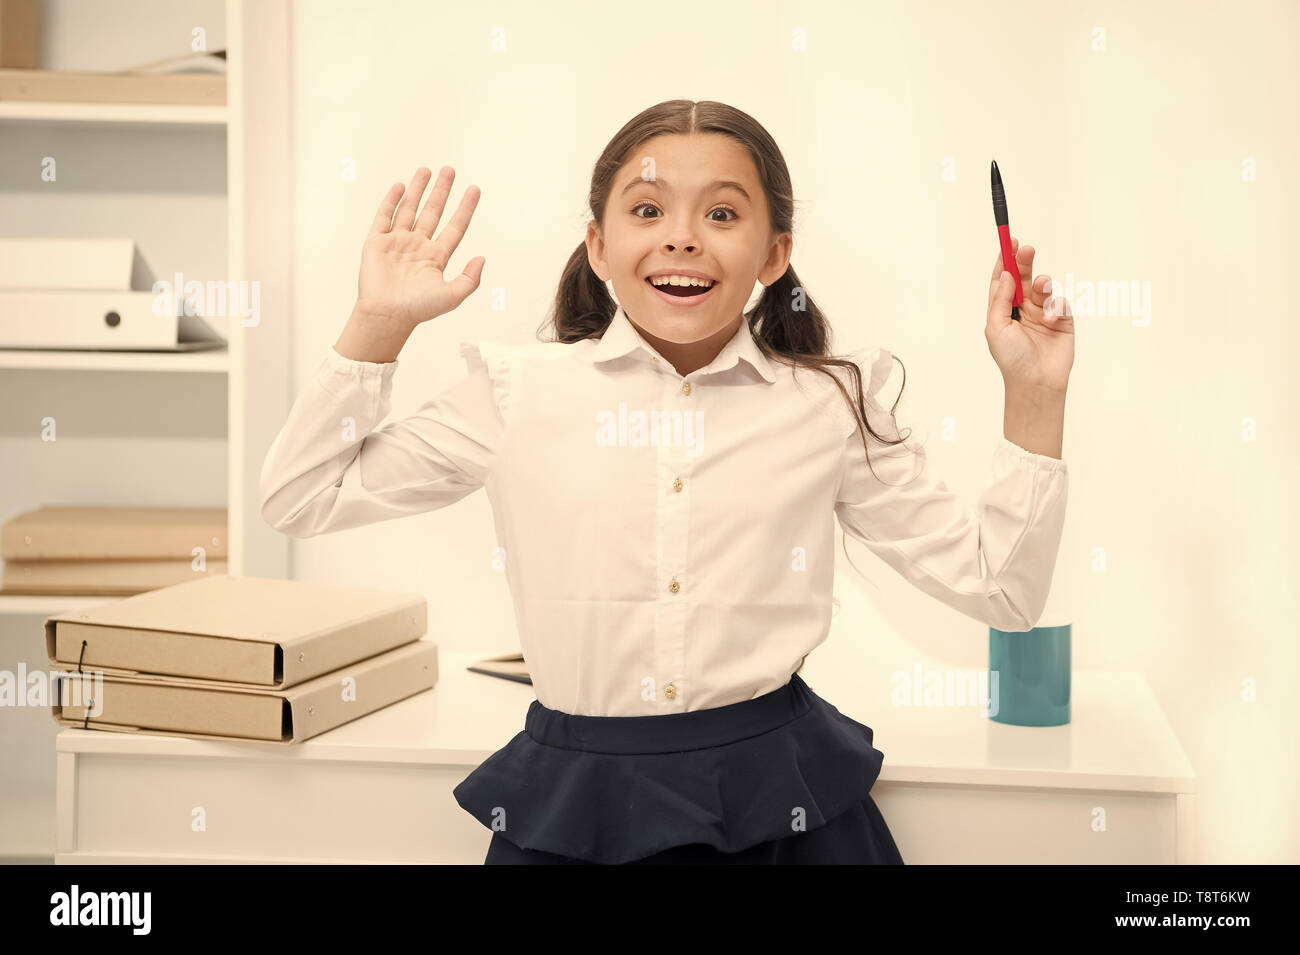 She knows right answer. Child girl wears school uniform standing excited face expression. Schoolgirl smart child looks excited white interior background. Girl remember right answer. Ready to answer. - Stock Image